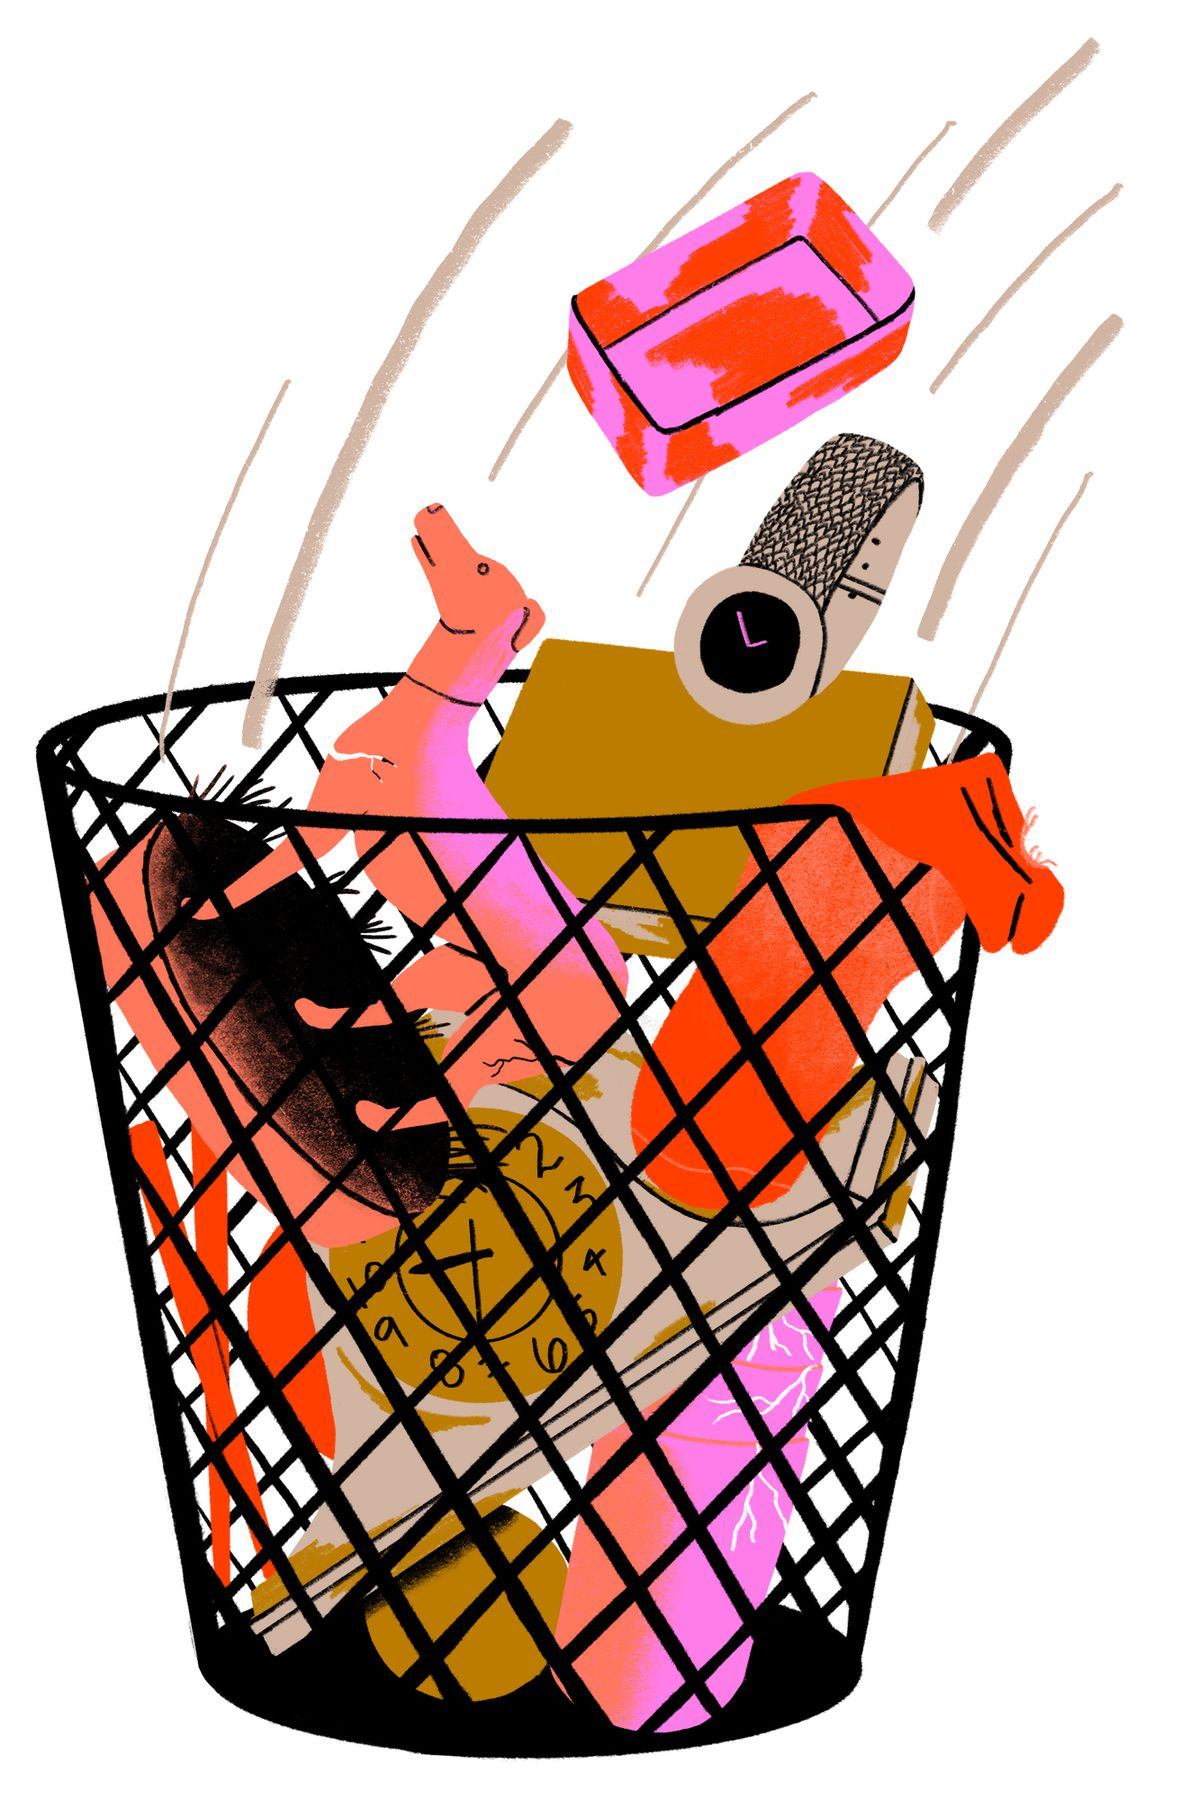 A lot of random items like a soap dish, dog statue, and vintage watch being tossed in a wire trash bin. Illustration.